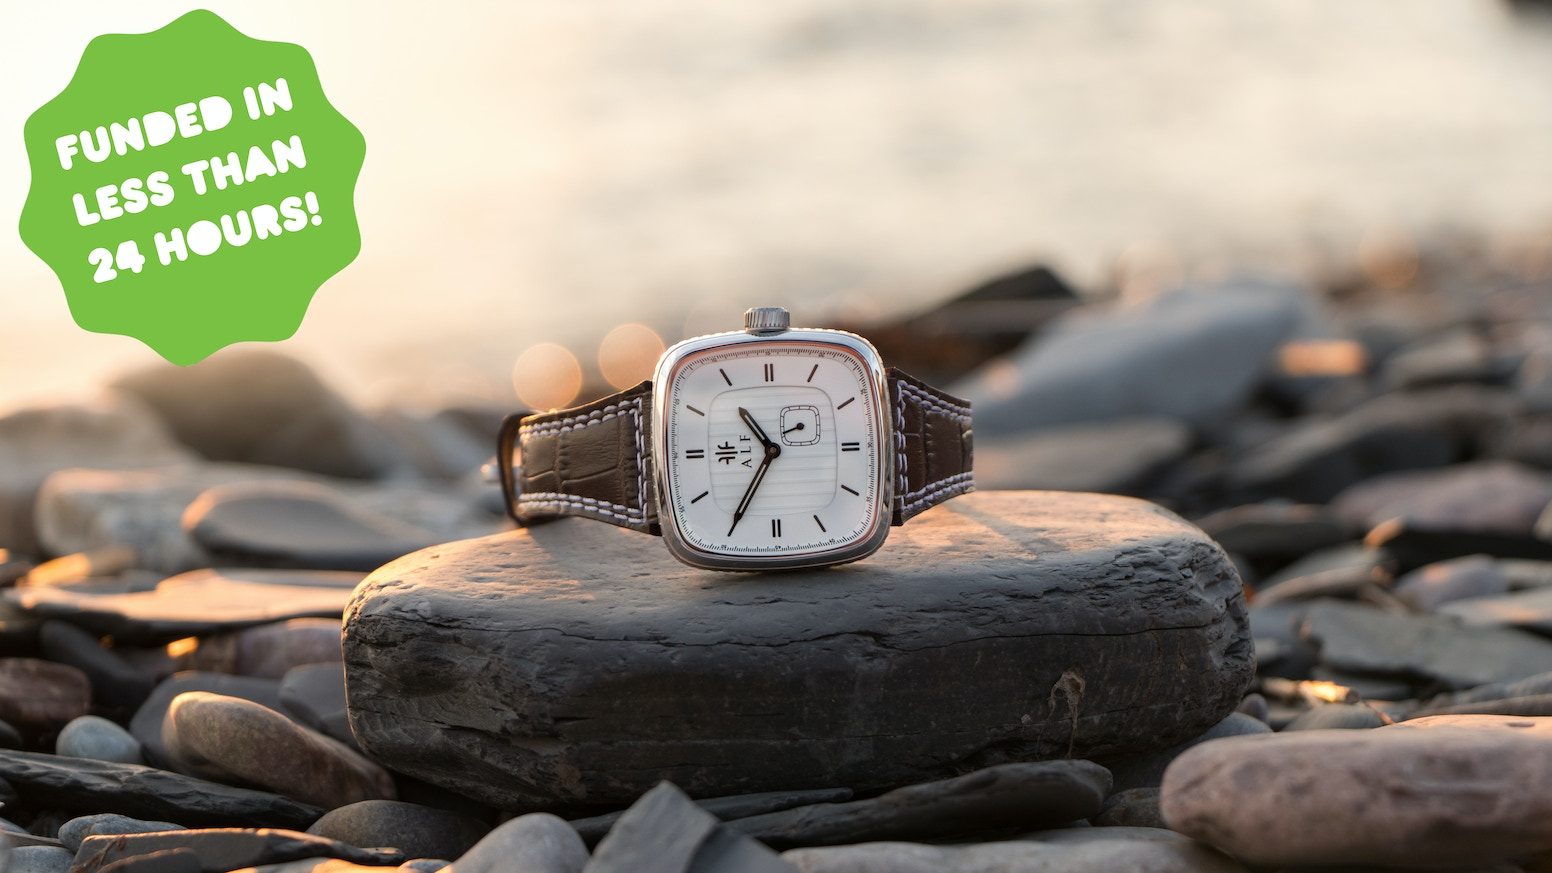 Uniquely designed square watches. Automatic movement and premium materials. One-time offer.